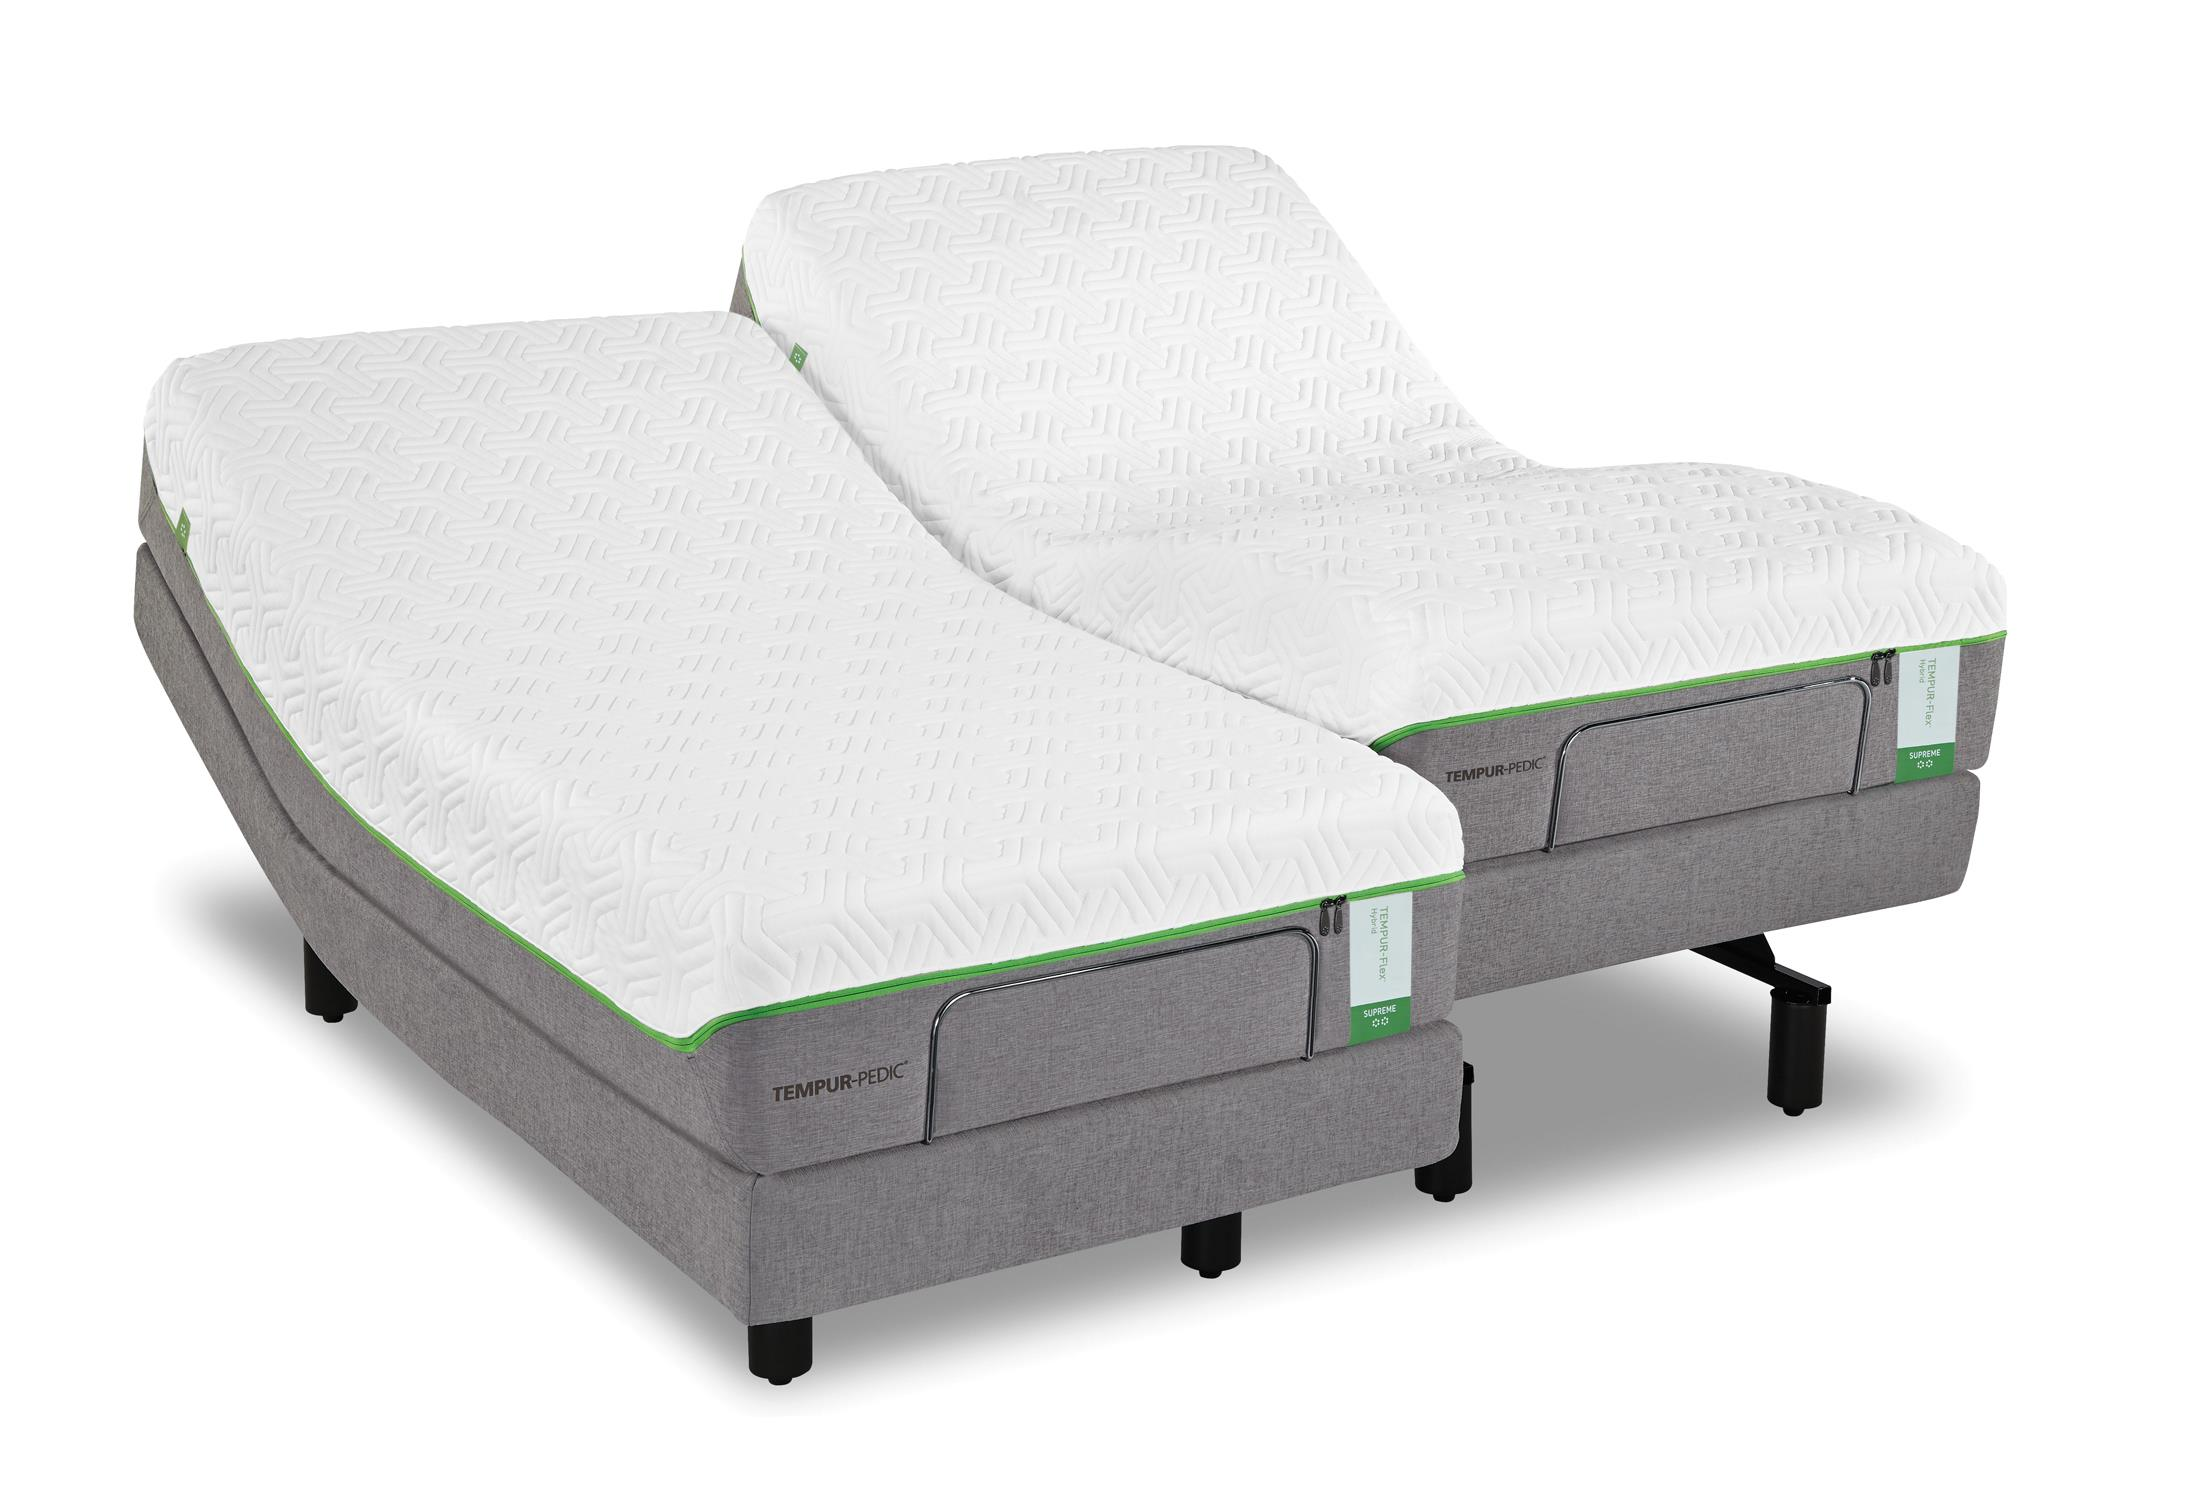 Queen Medium Plush Mattress and TEMPUR Ergo Plus Base by Tempur